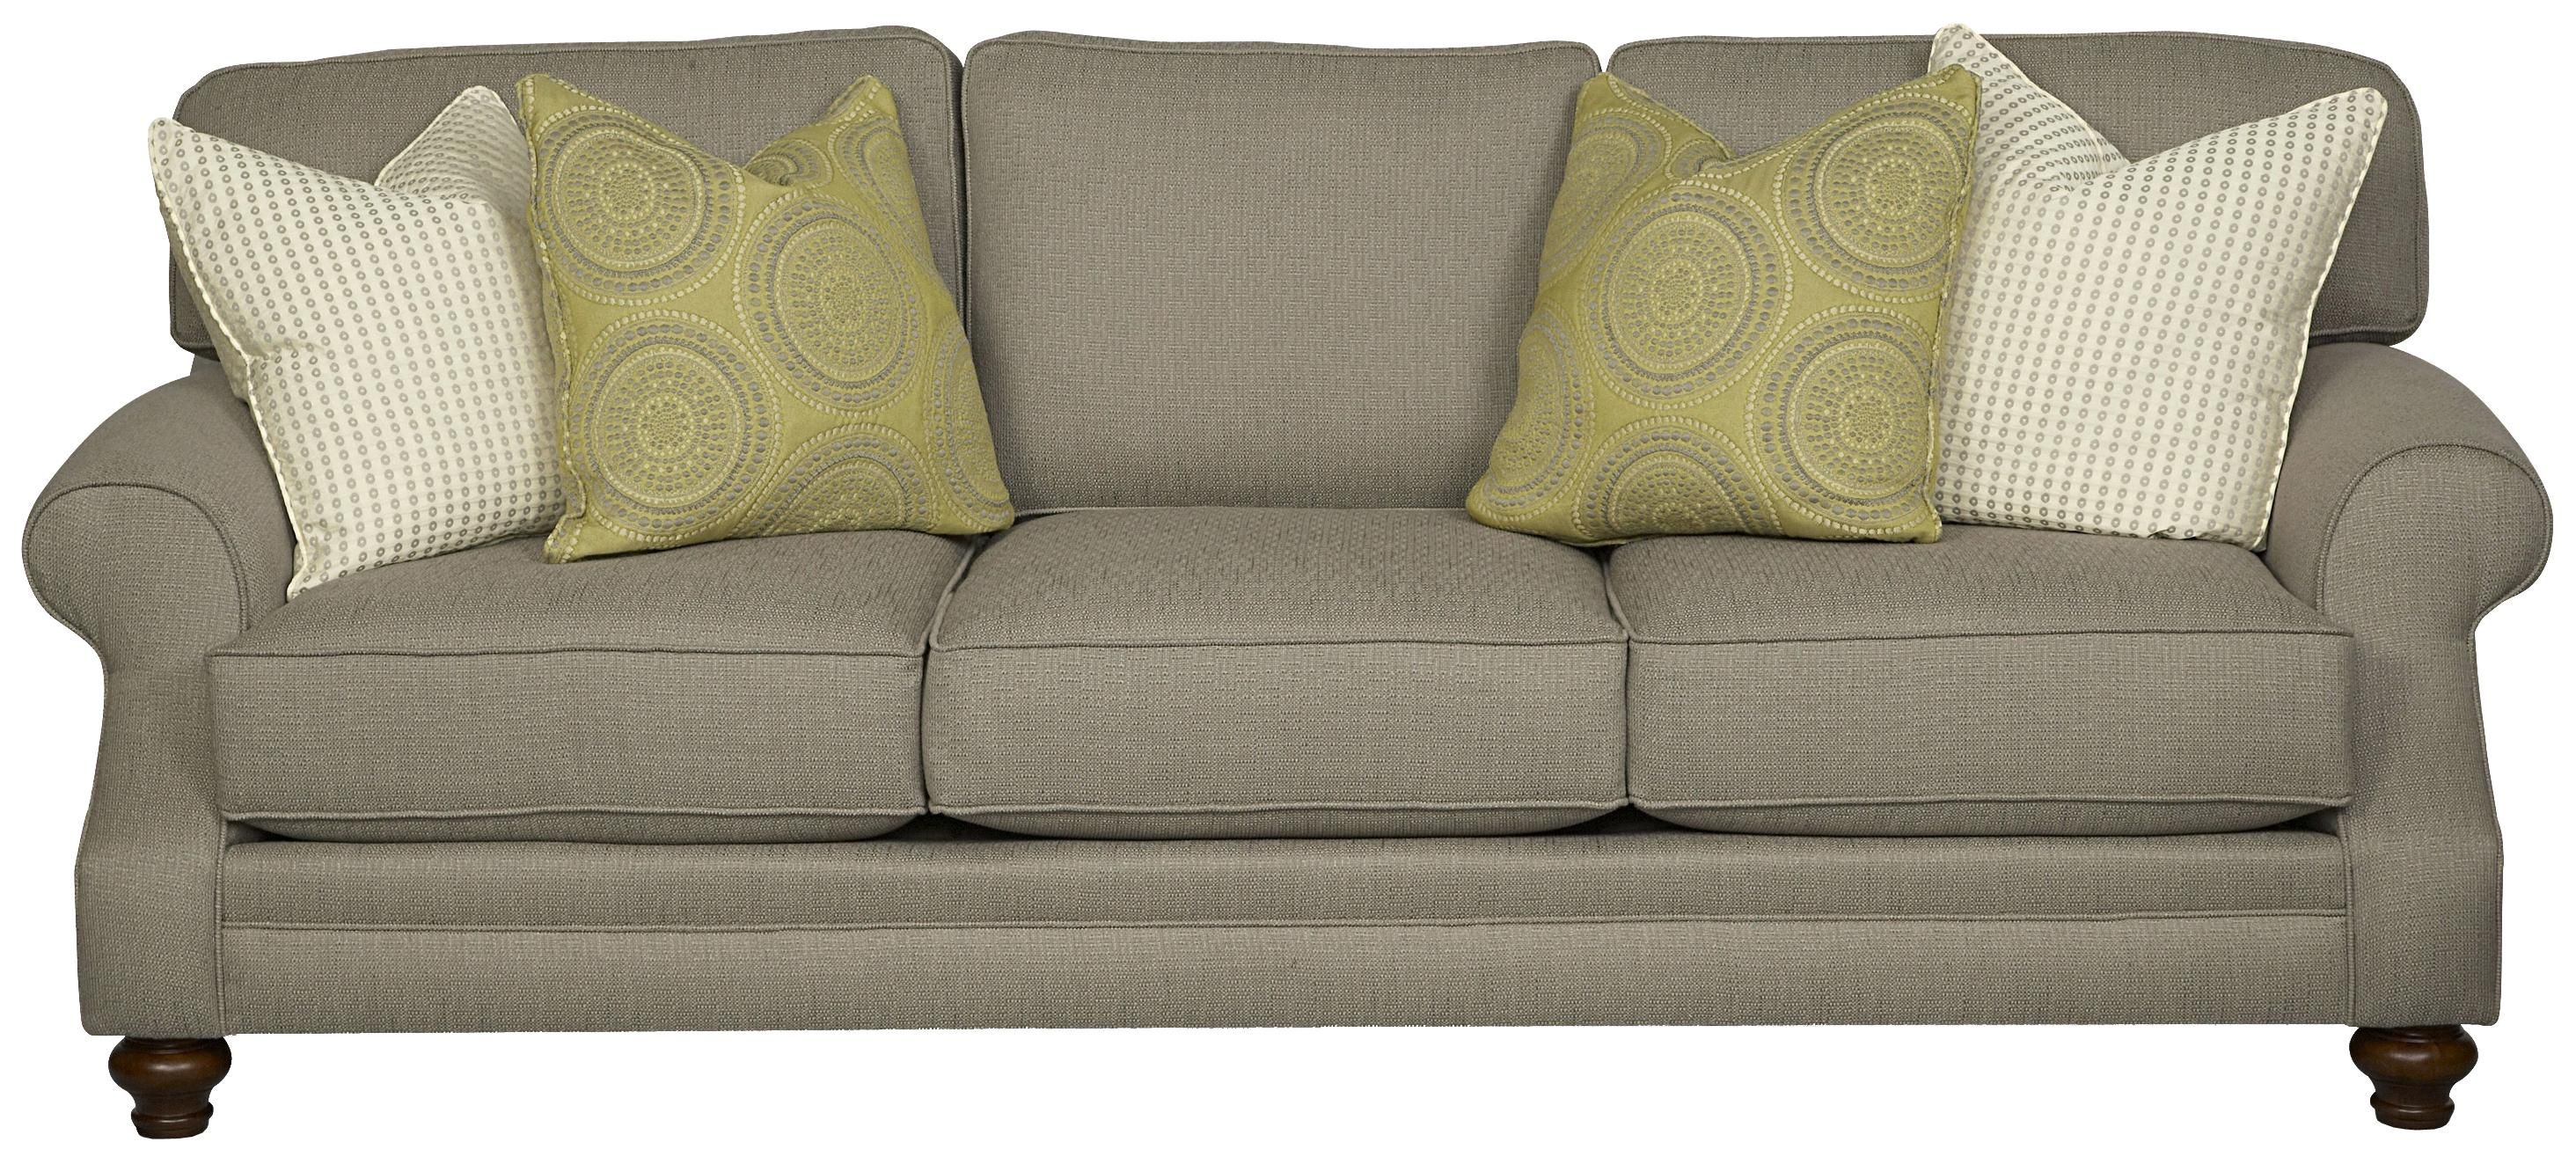 Best 456 Stationary Sofa With Contemporary Elegance By Alan 400 x 300